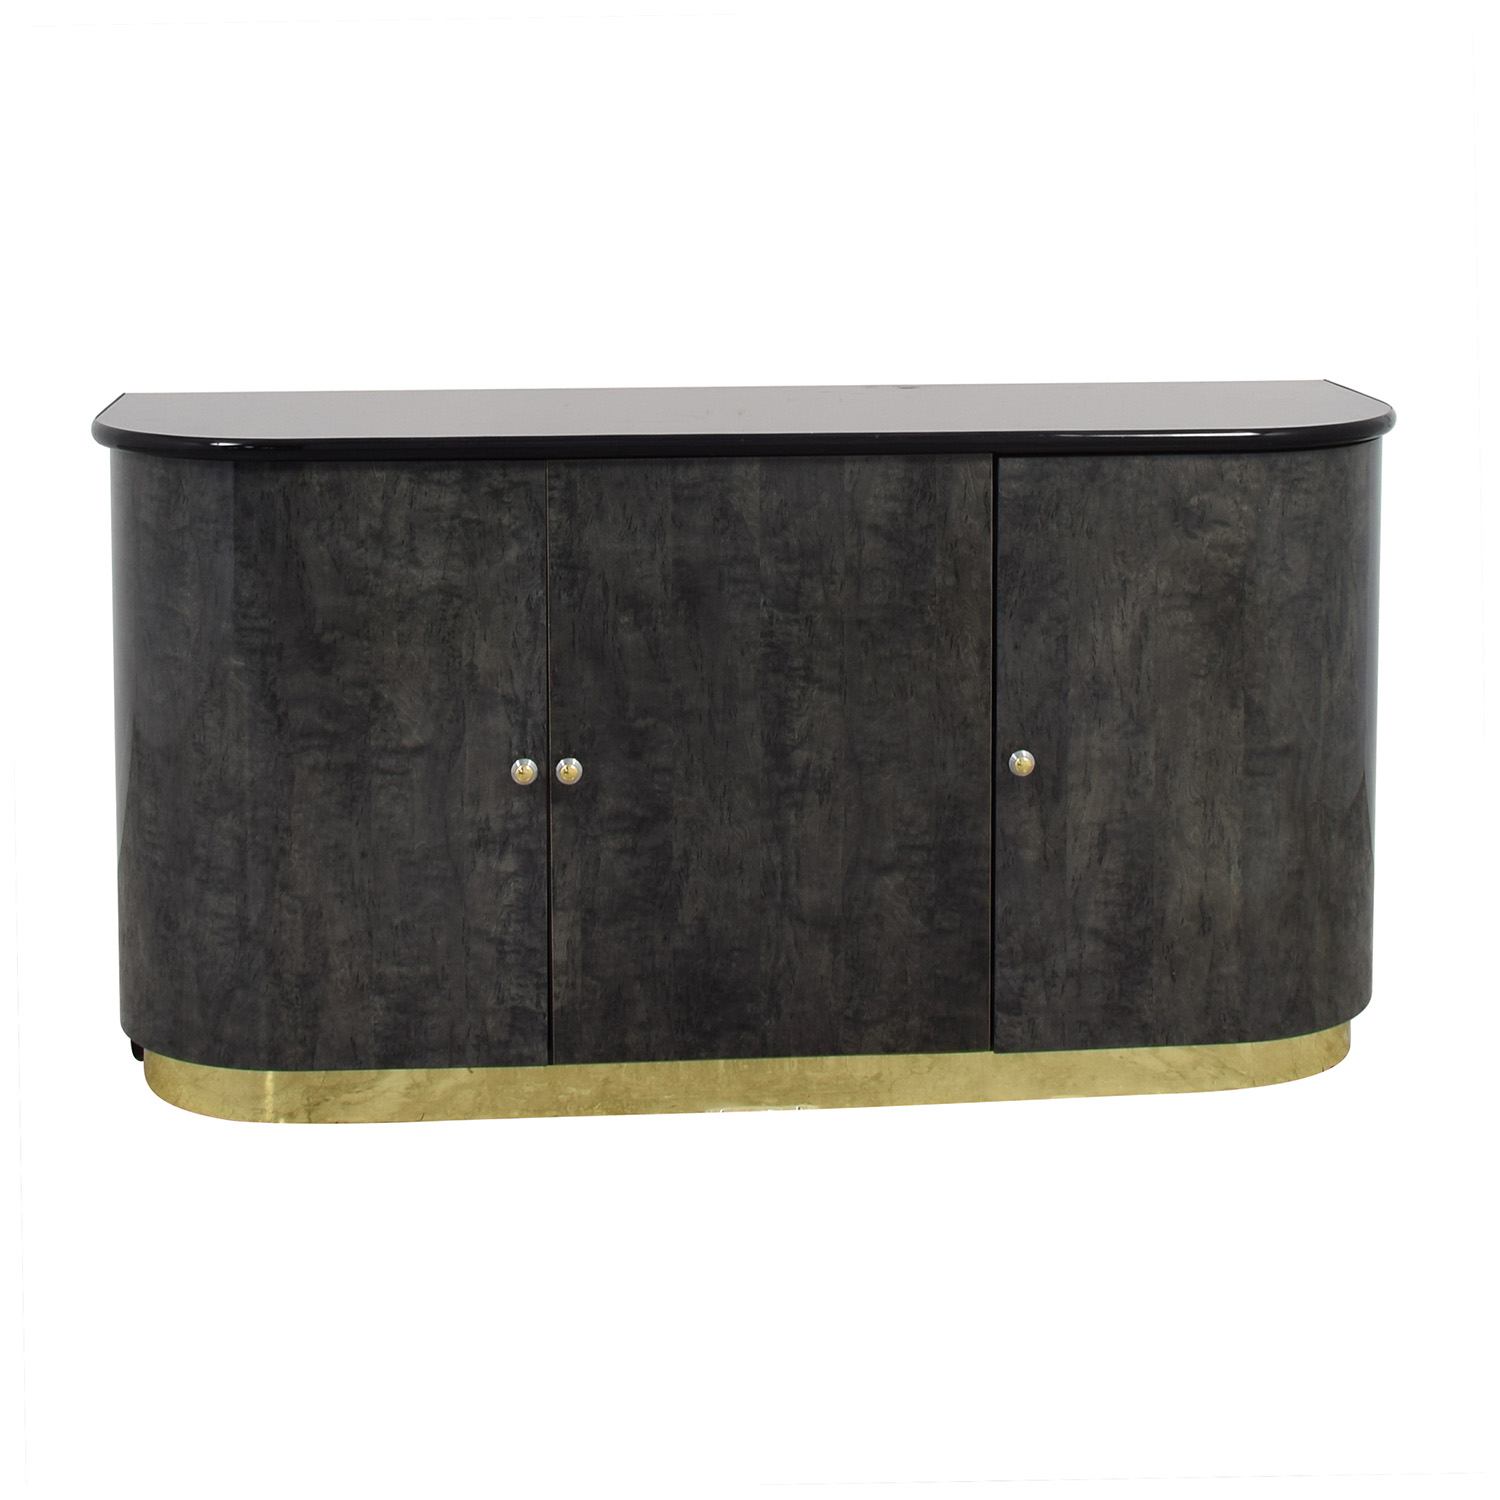 Black Dining Room Cabinet With Gold Accents Coupon